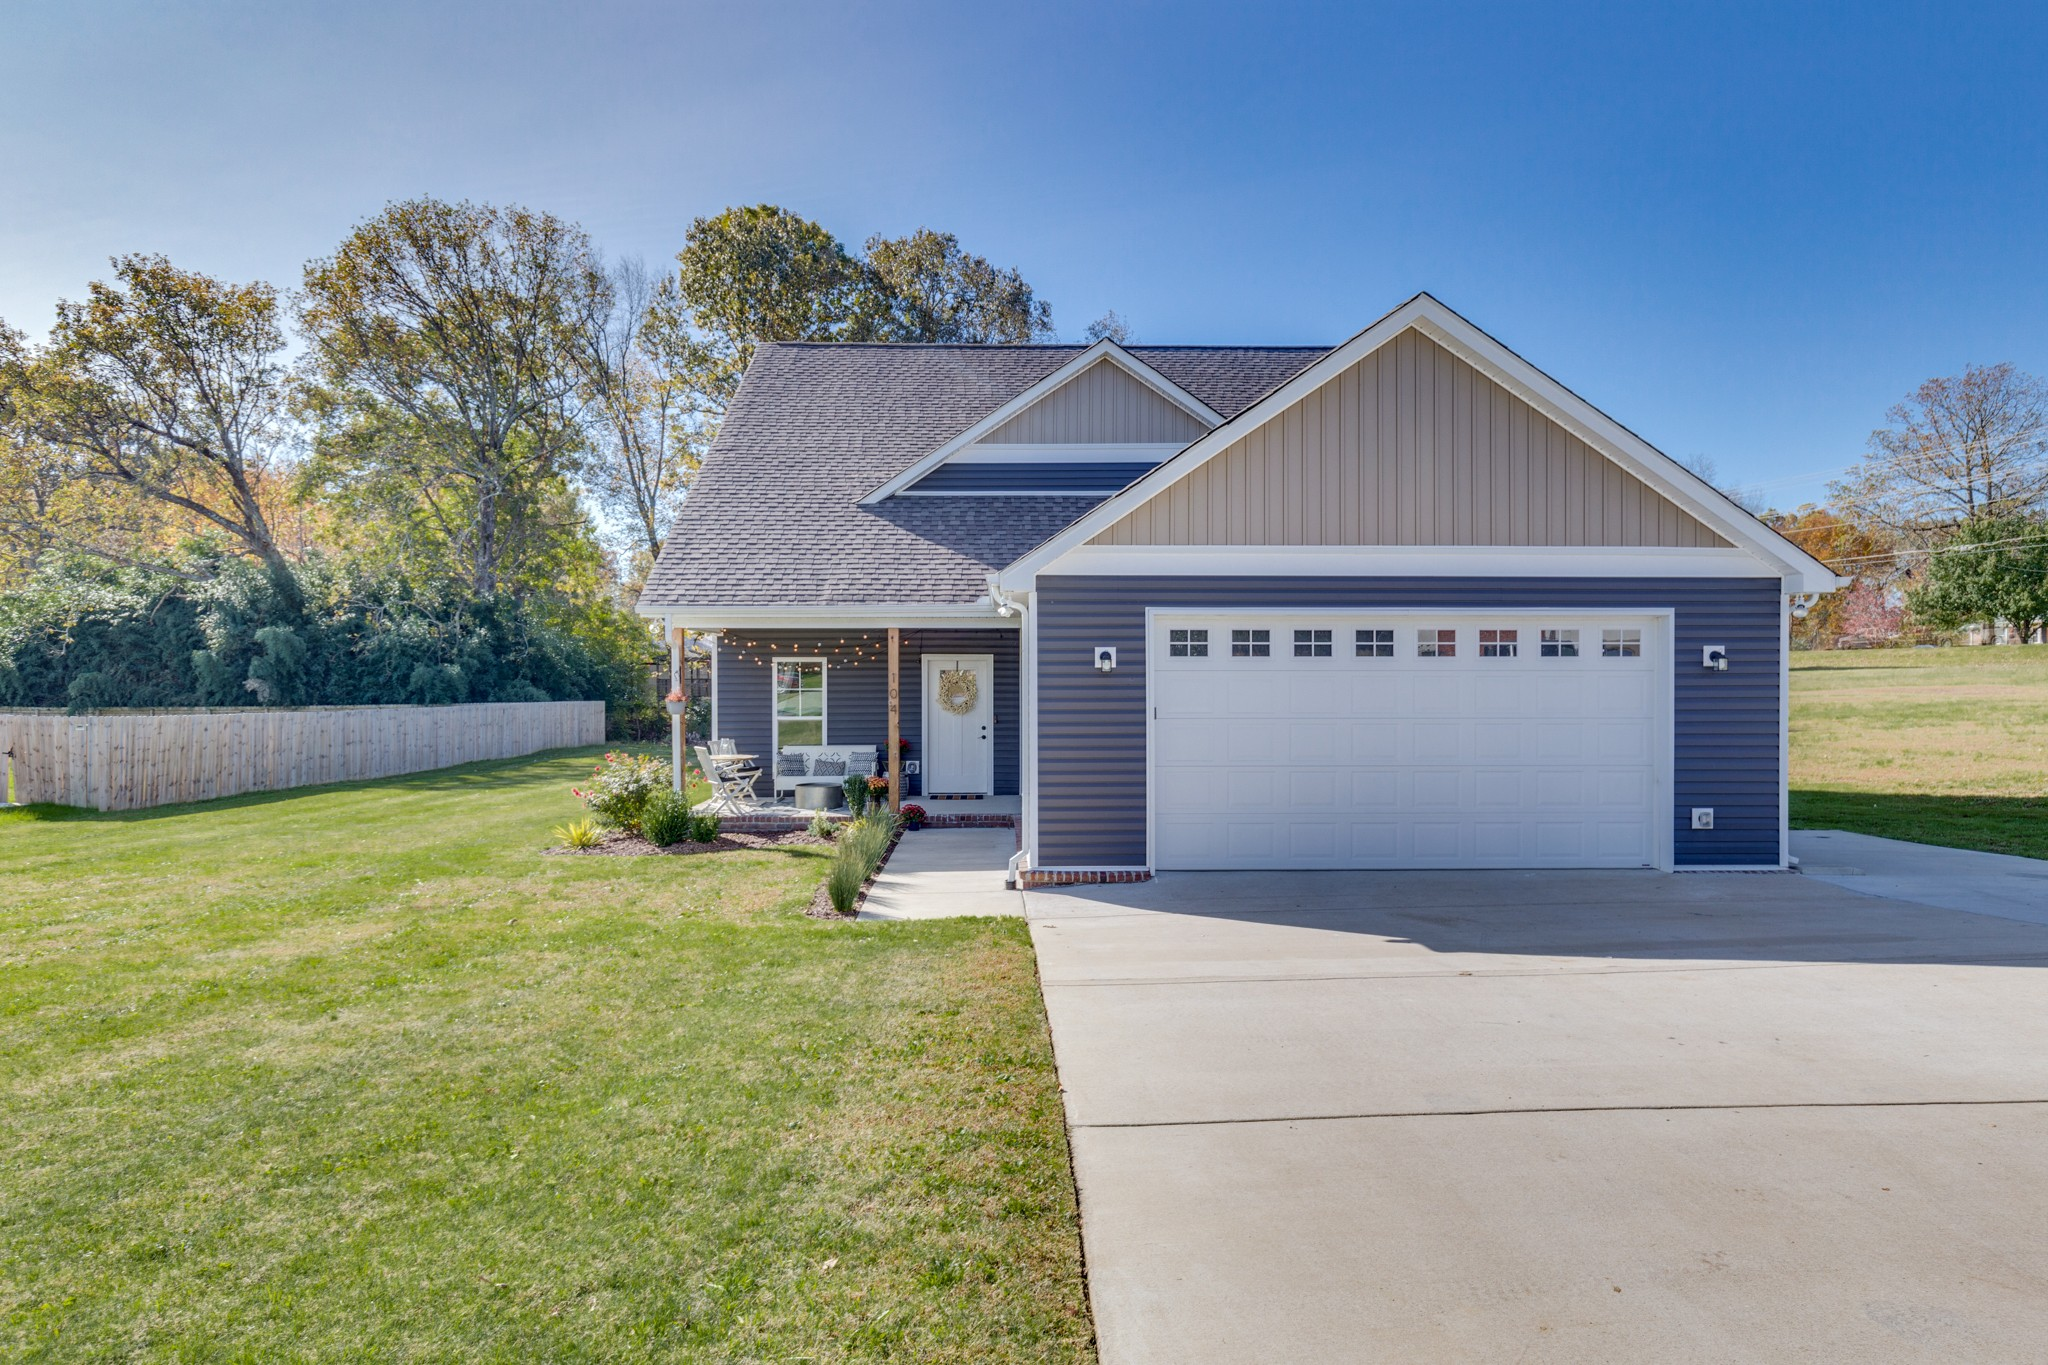 104 Wagners Way Property Photo - White Bluff, TN real estate listing